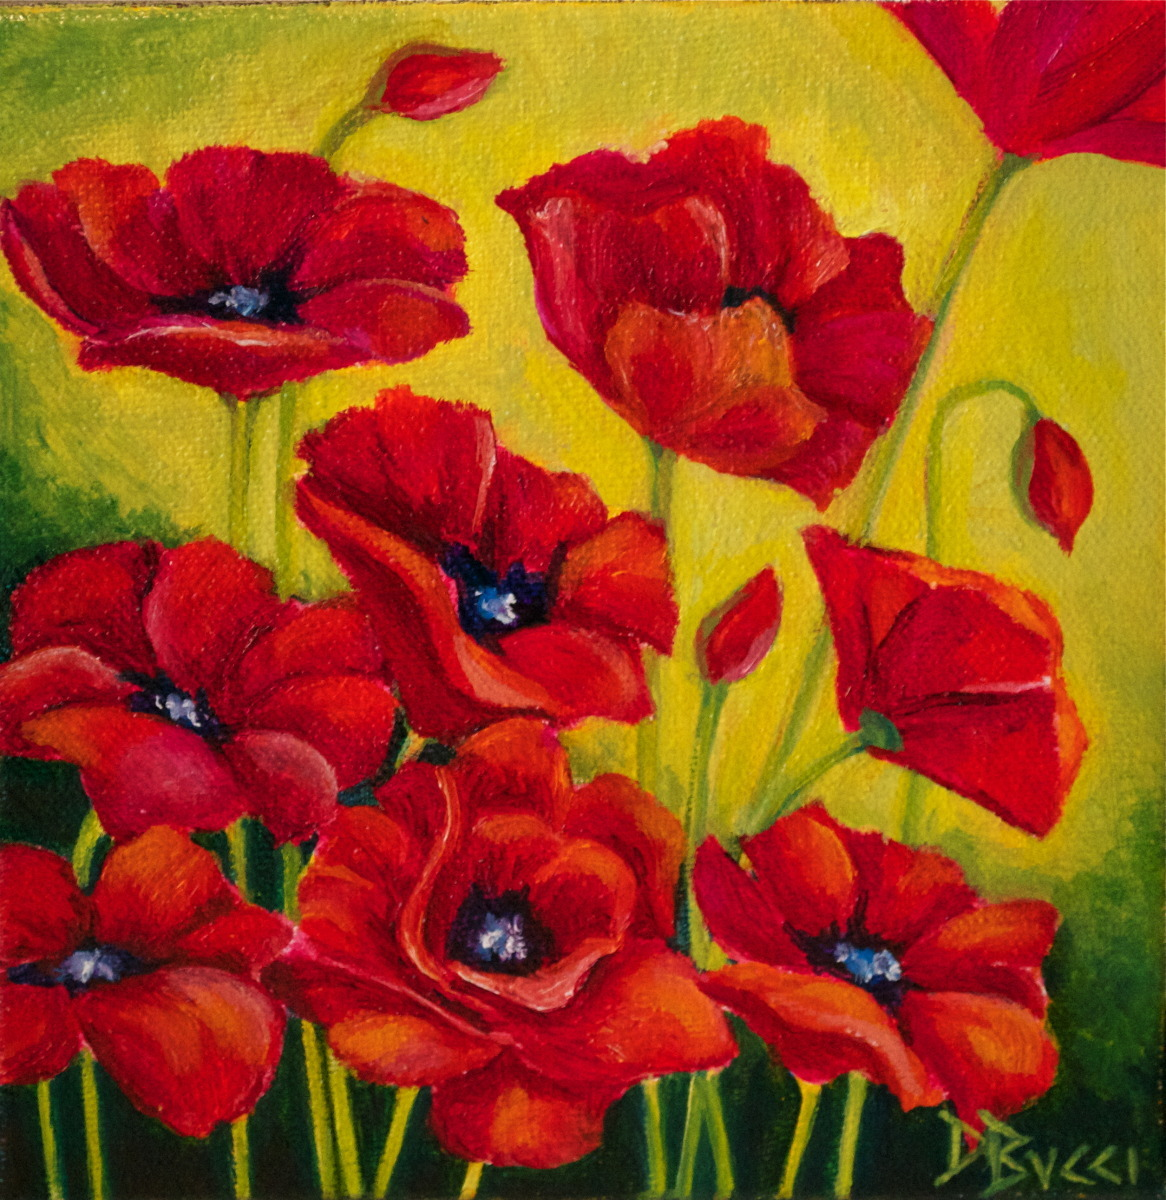 "Debra Bucci Fine Art presents Sun Poppies which is a Pocketbook or miniature oil painting that measures 6"" square. This is red and yellow and has poppies reaching for the sun. It is a feel good painting.